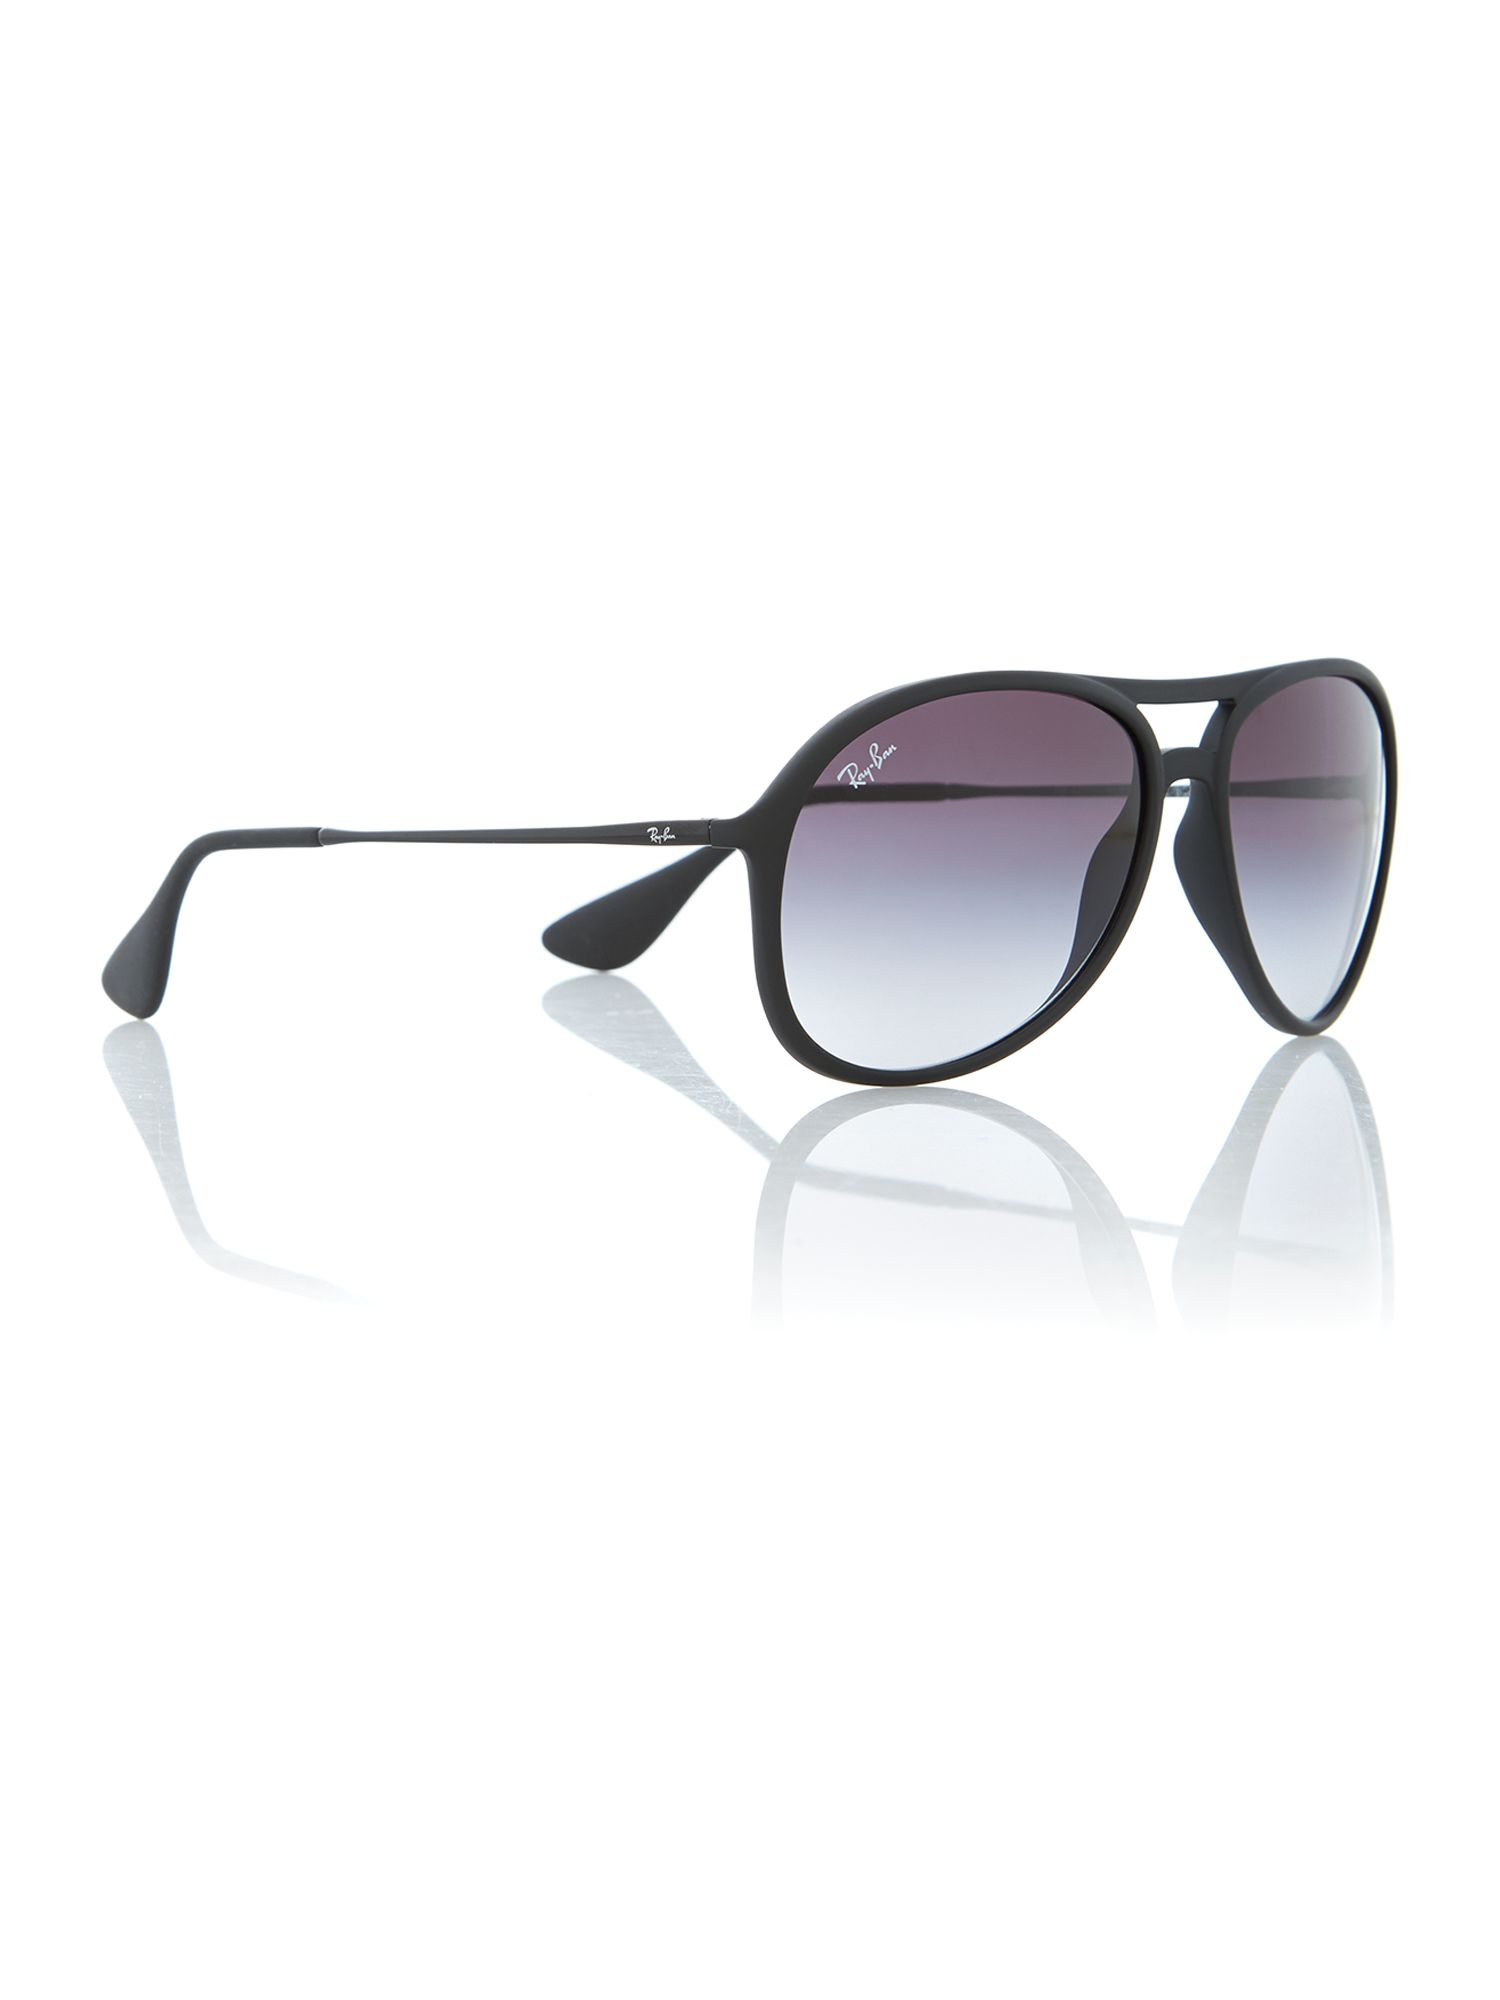 Rubber black pilot sunglasses